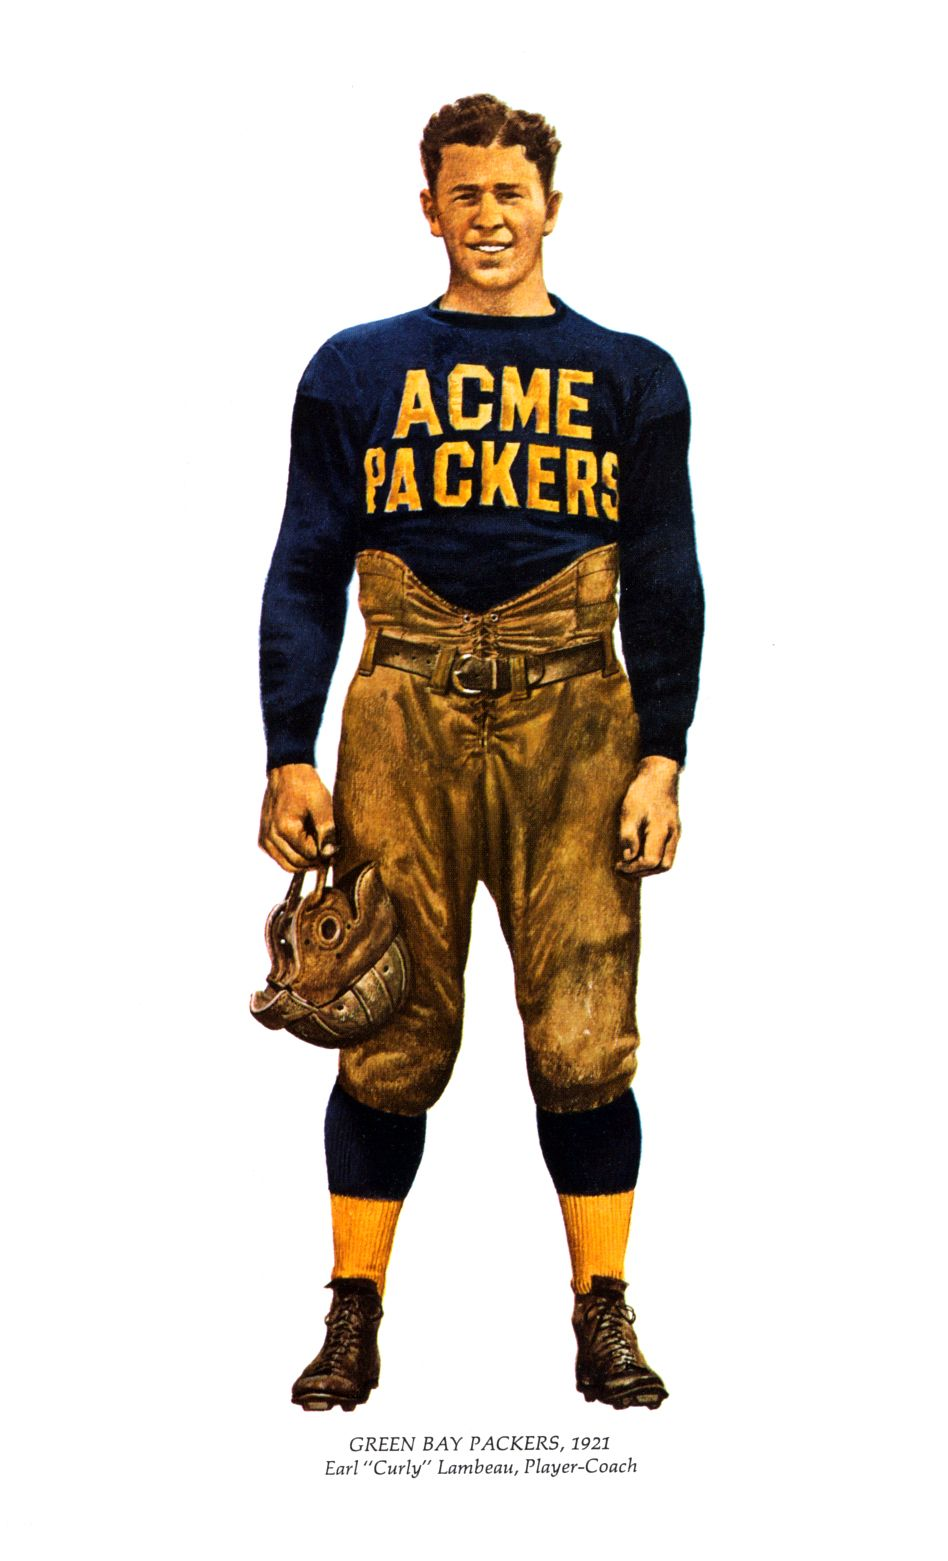 Here S Something You Probably Didn T Know The Green Bay Packer Football Team Green Bay Packers Green Bay Packers Fans Green Bay Packers Vintage